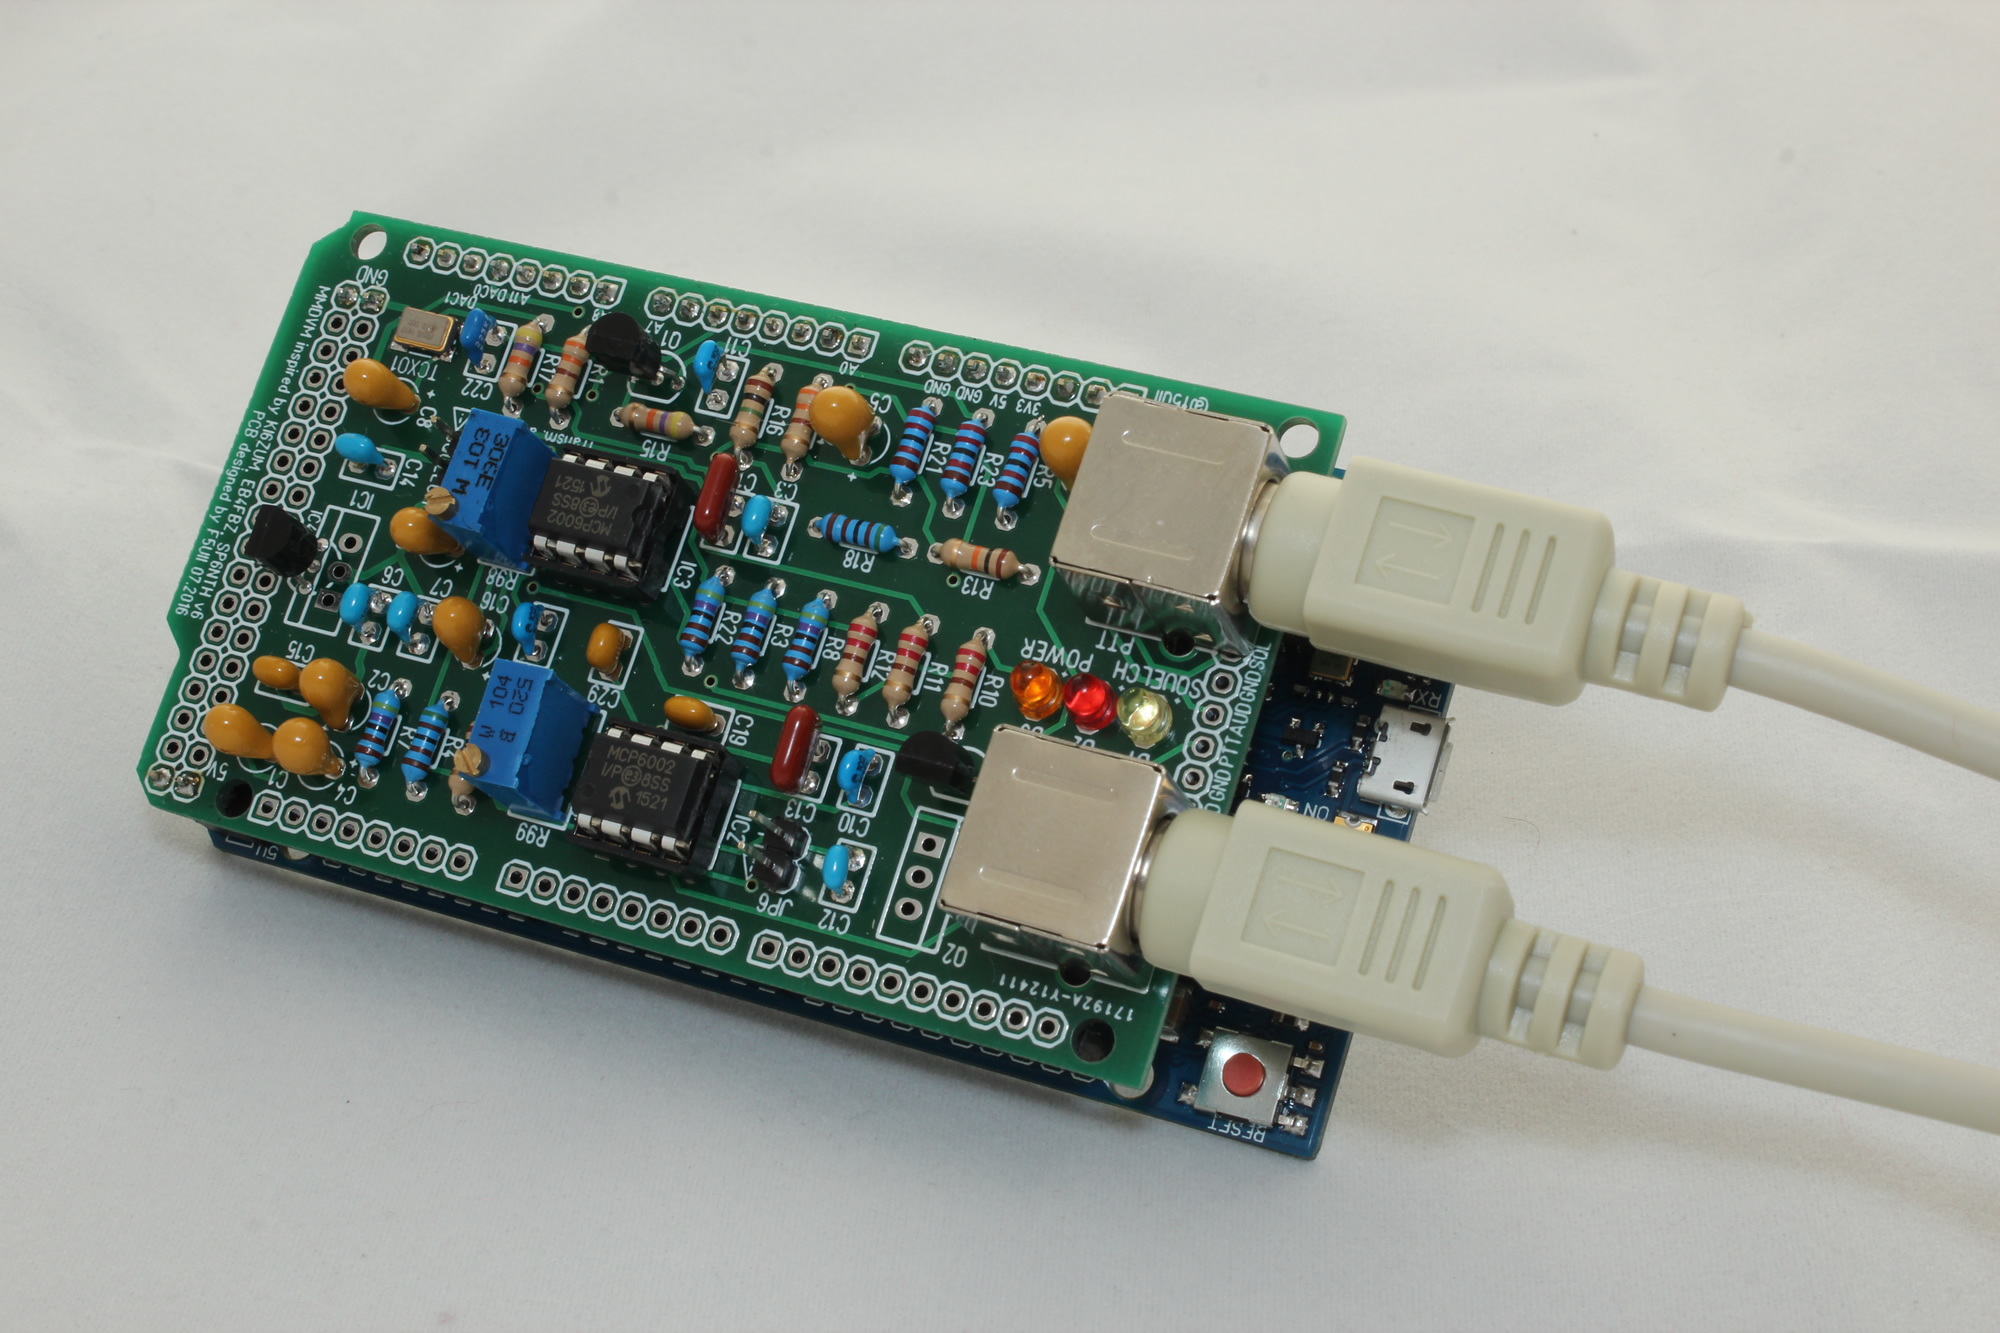 MMDVM board on its arduino due and mini 6 pin Din connections to the receiver and transmitter